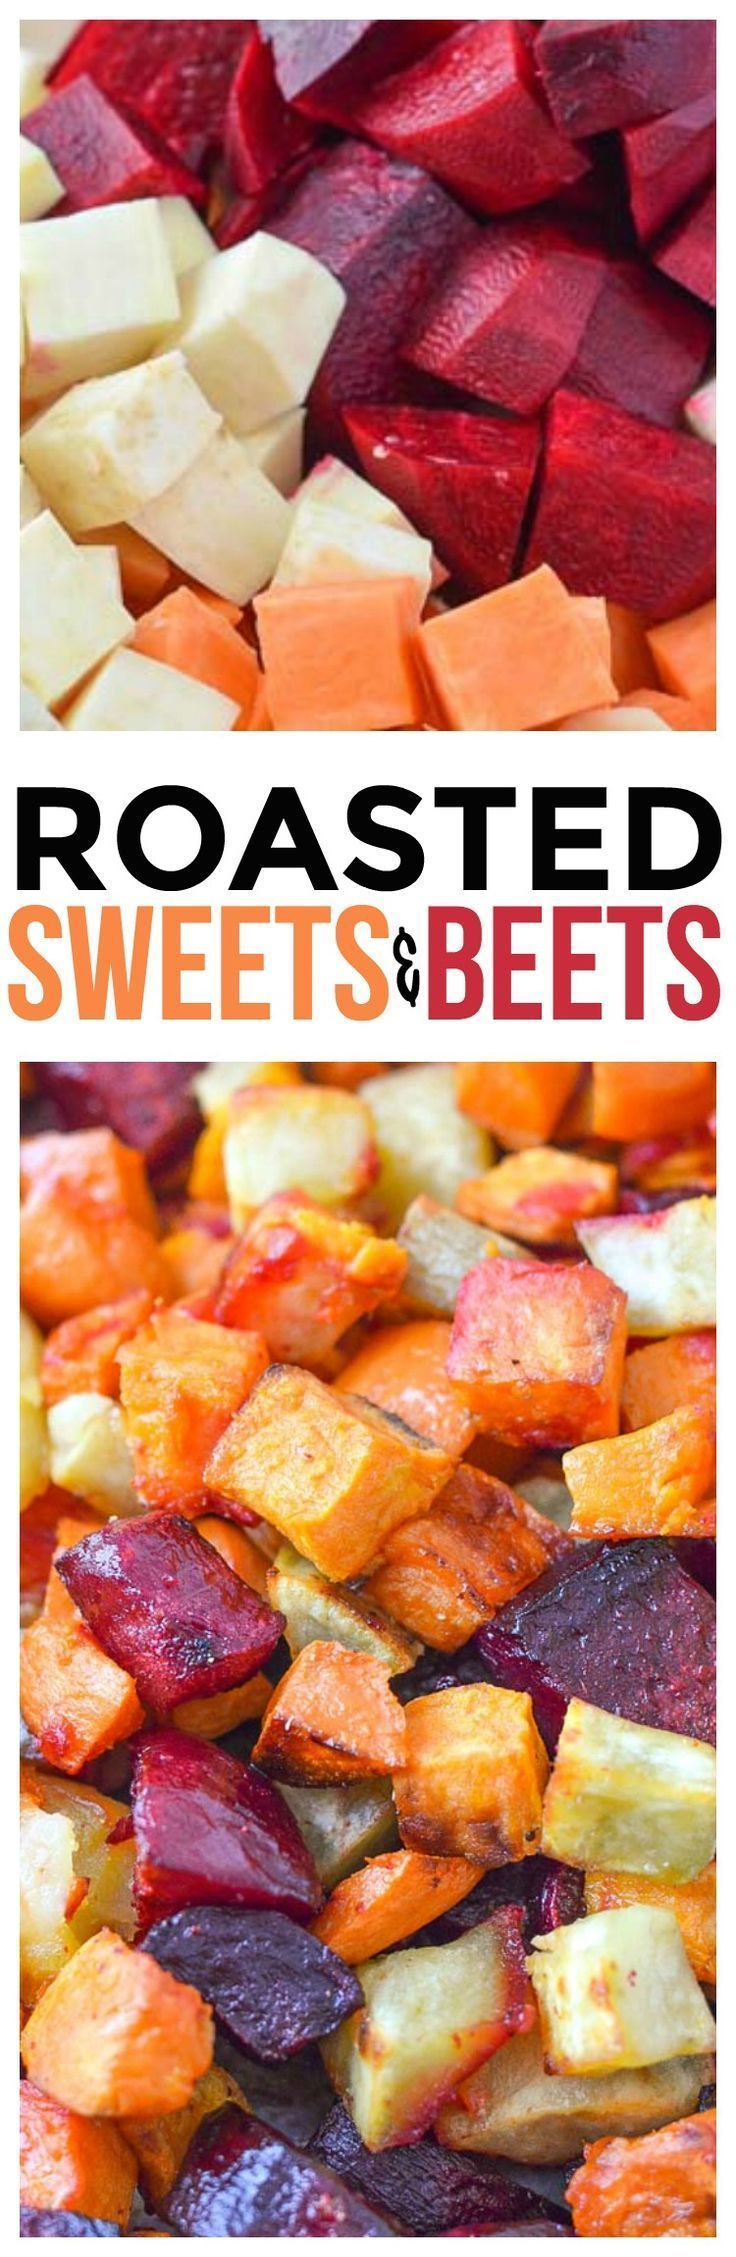 Oven Roasted Sweet Potatoes and Beets using Coconut Oil.